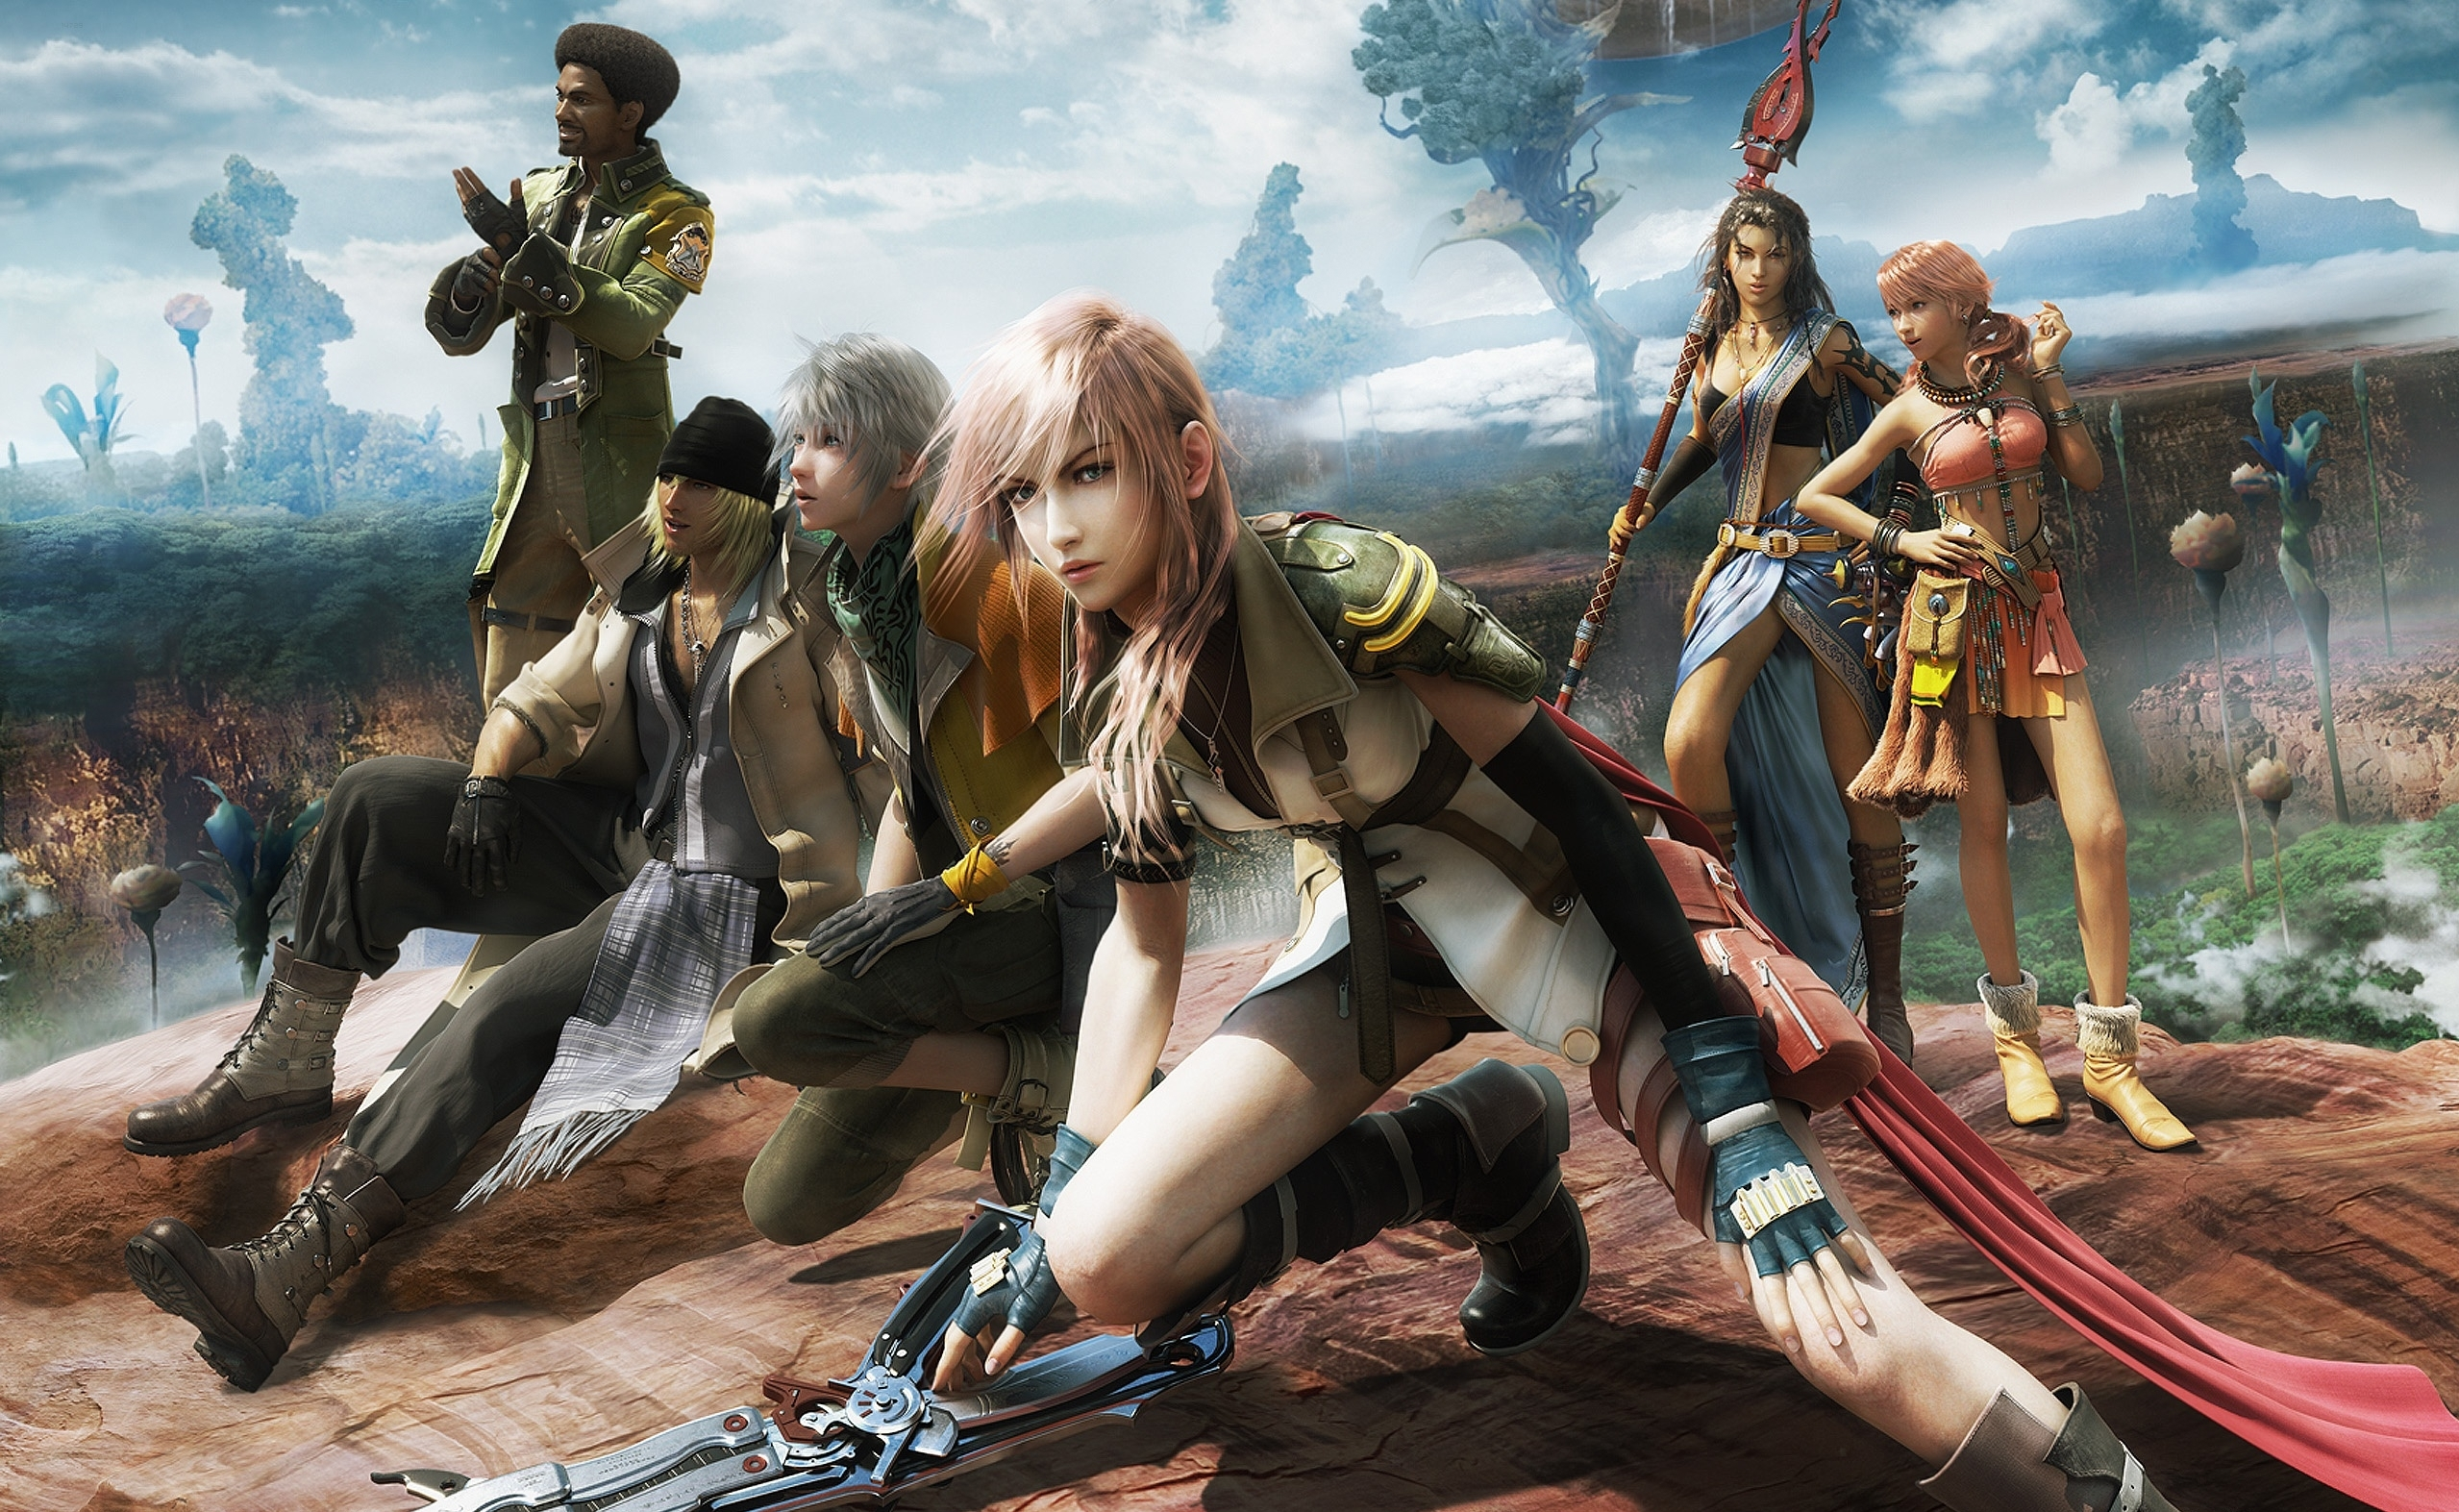 140 final fantasy xiii hd wallpapers   background images - wallpaper